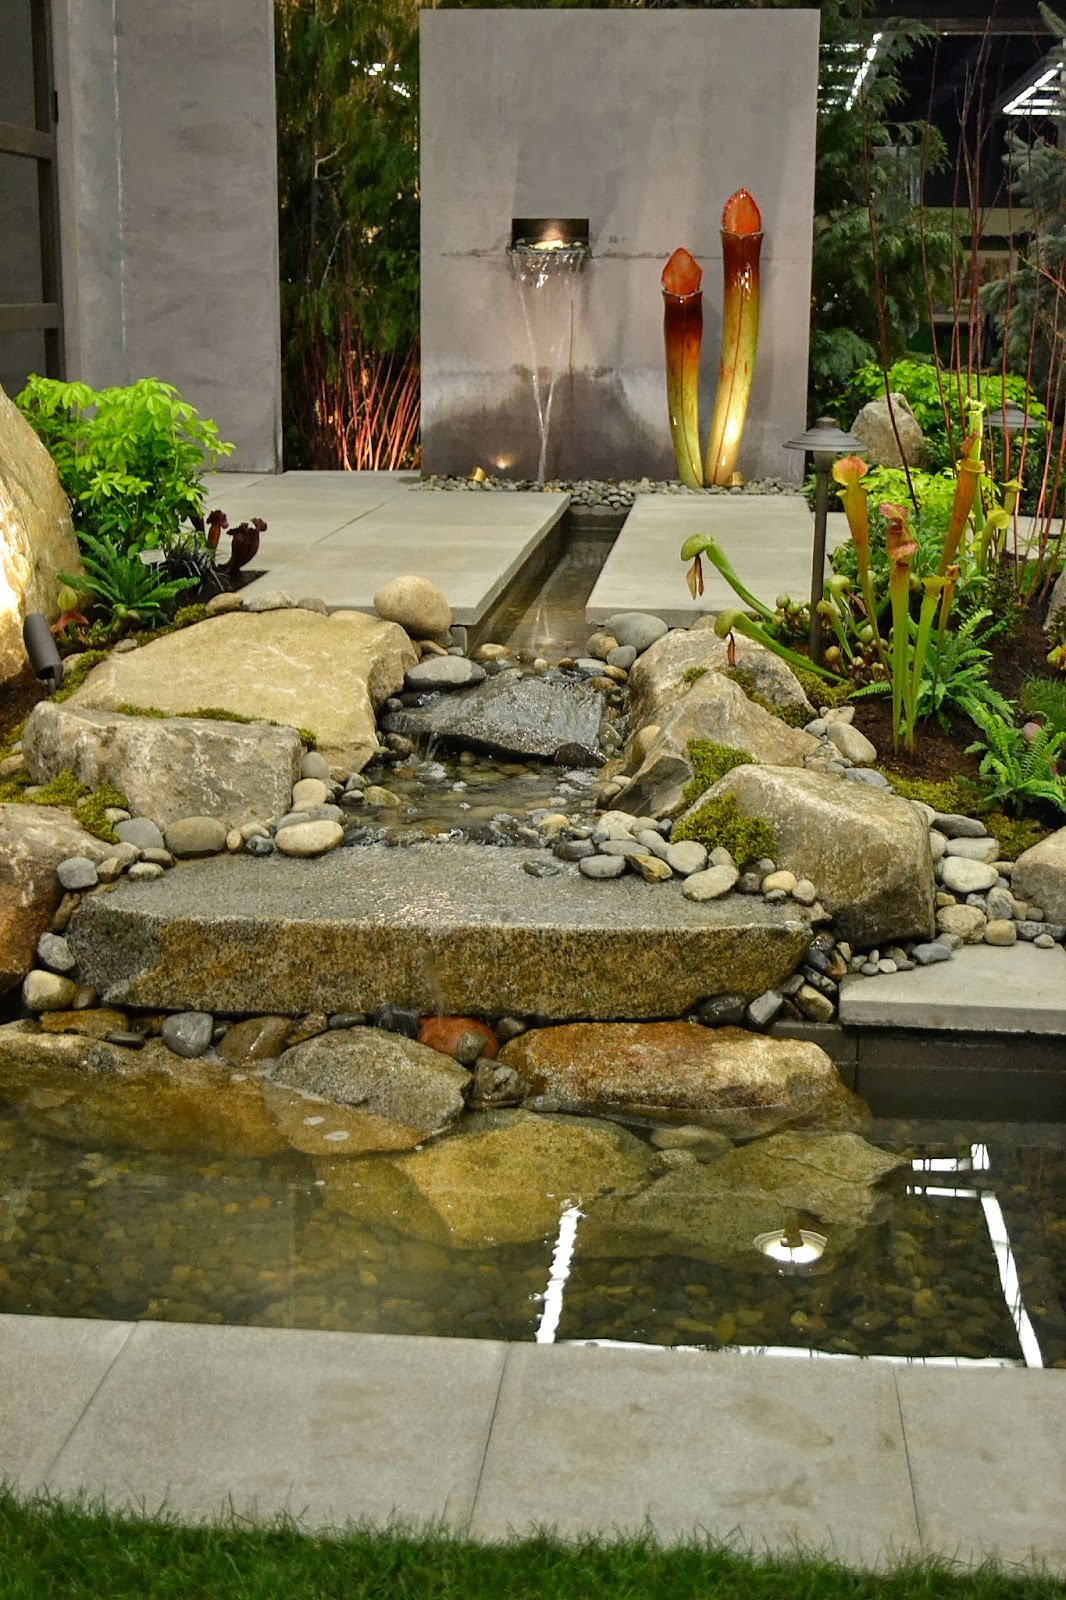 The Outlaw Gardener: Northwest Flower and Garden Show - More of ...